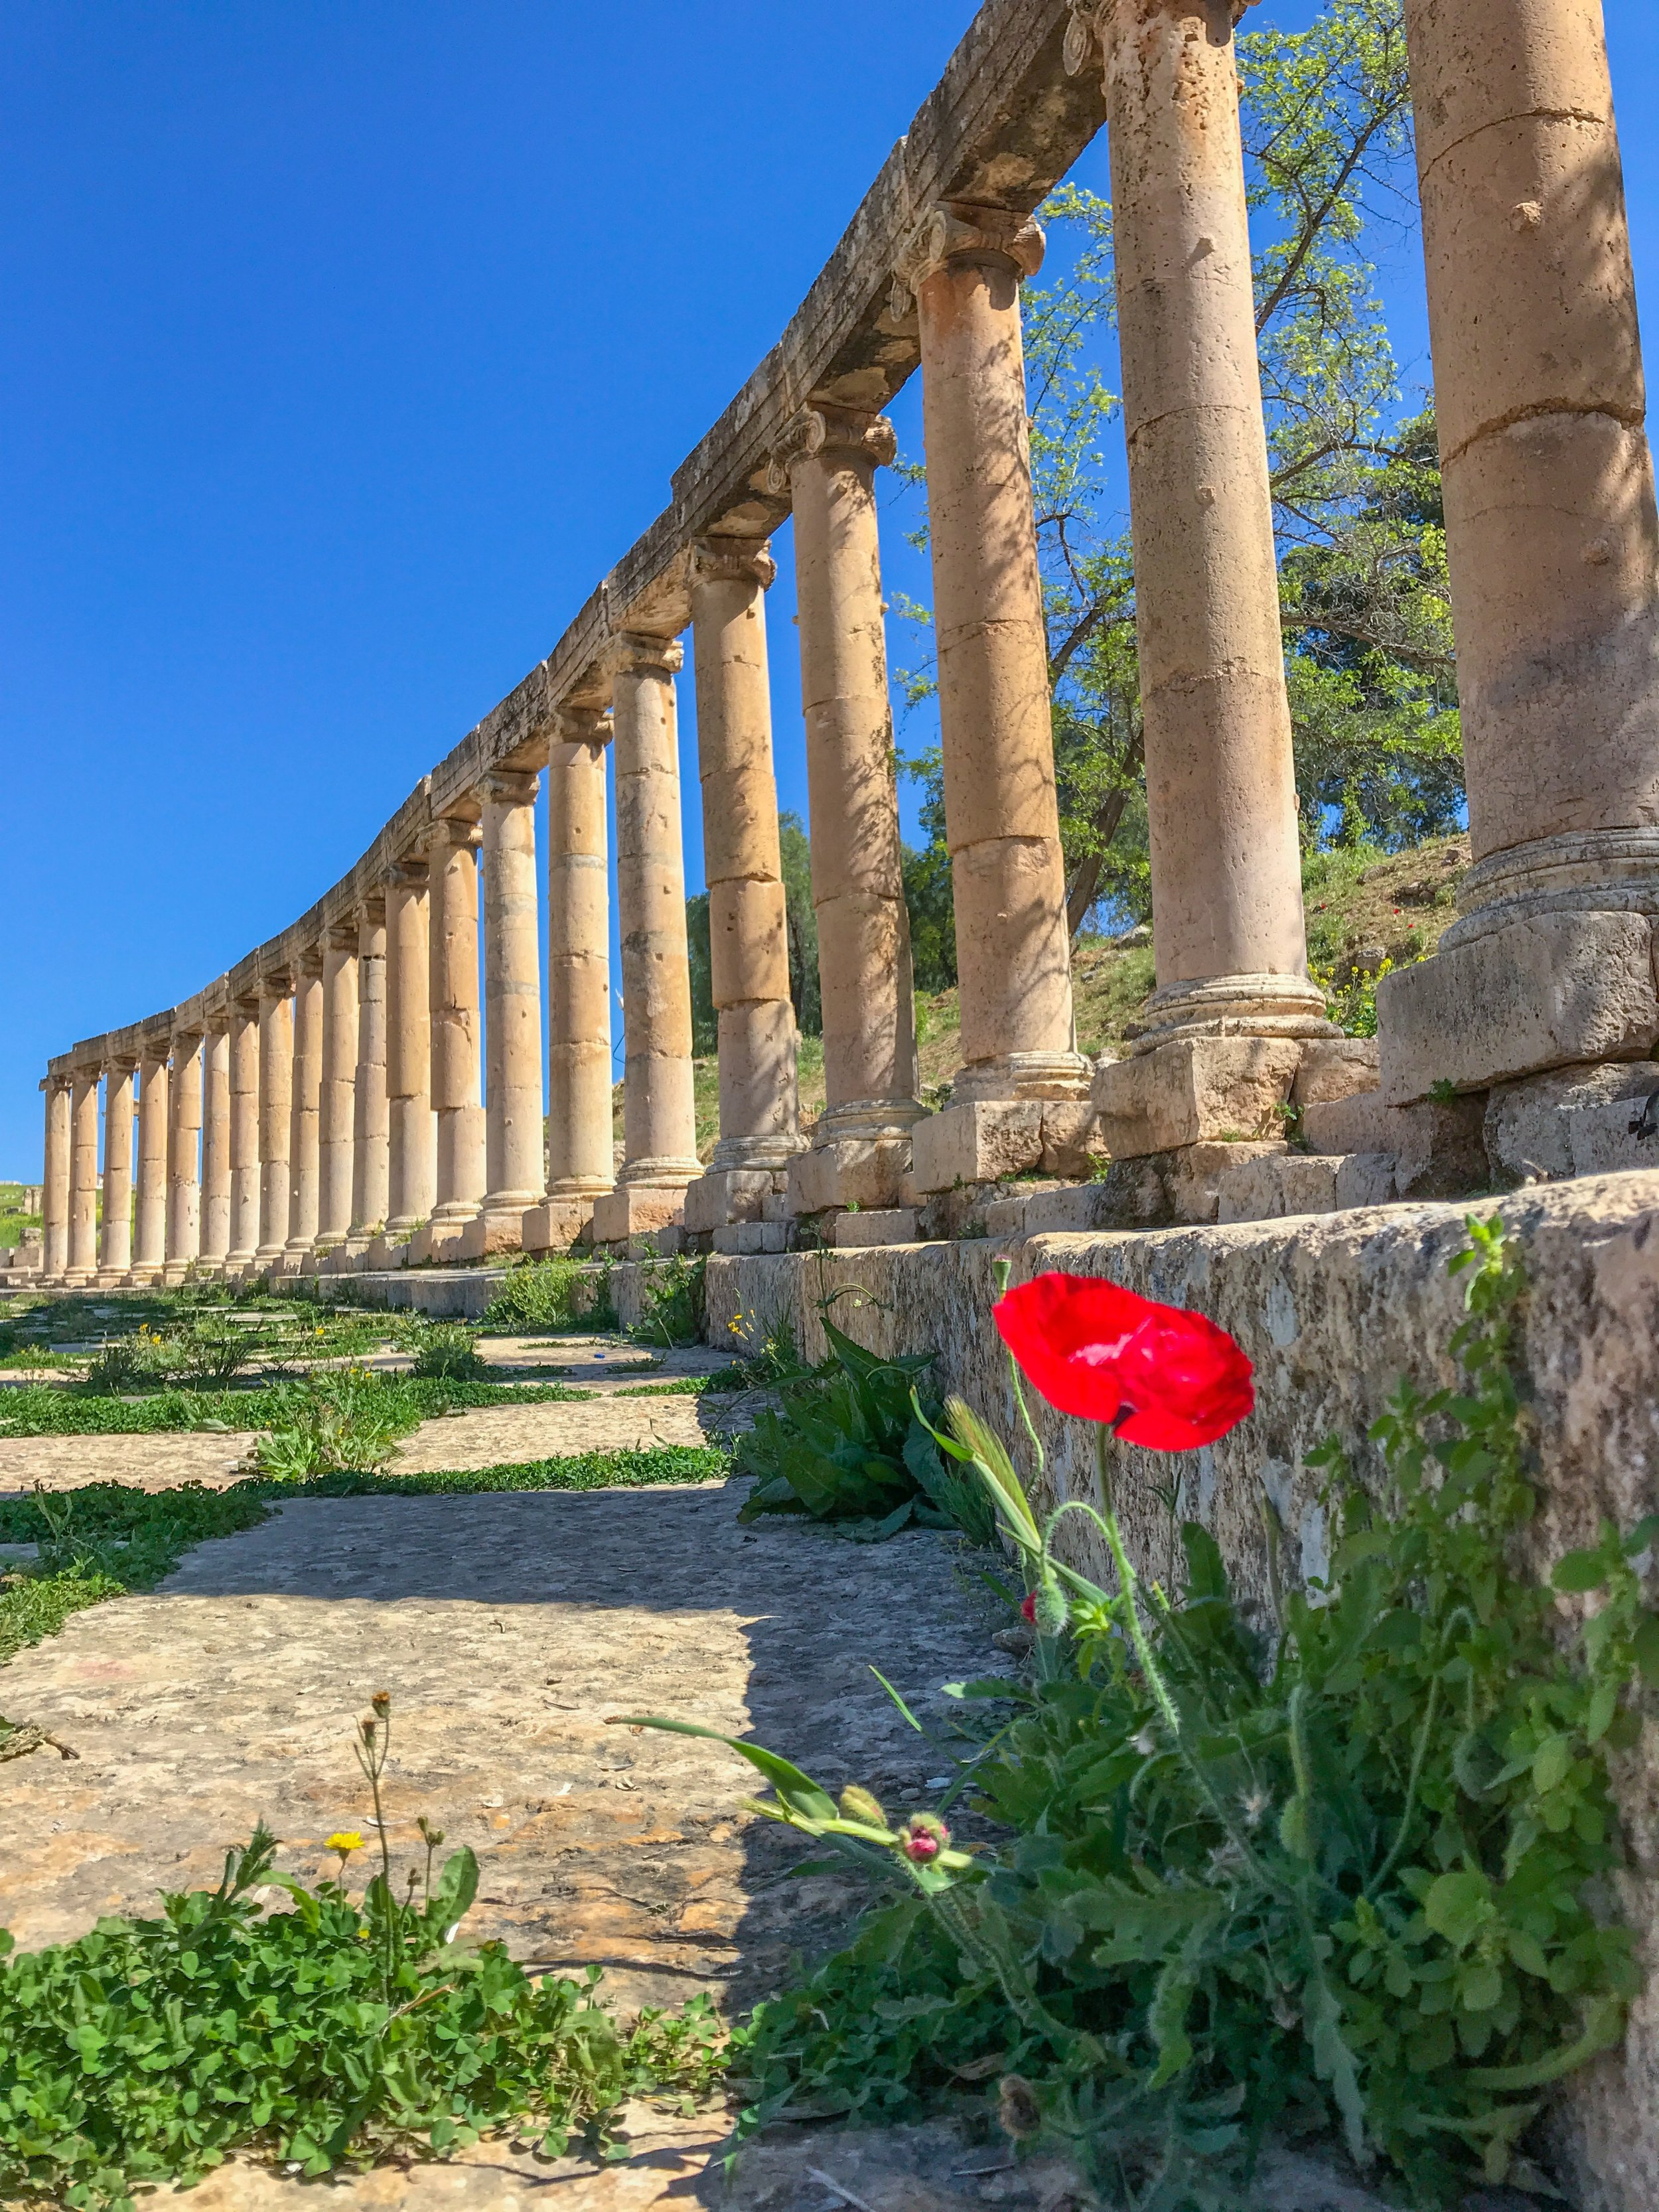 Jerash archeological ruins and all of Jordan is especially beautiful in the springtime.